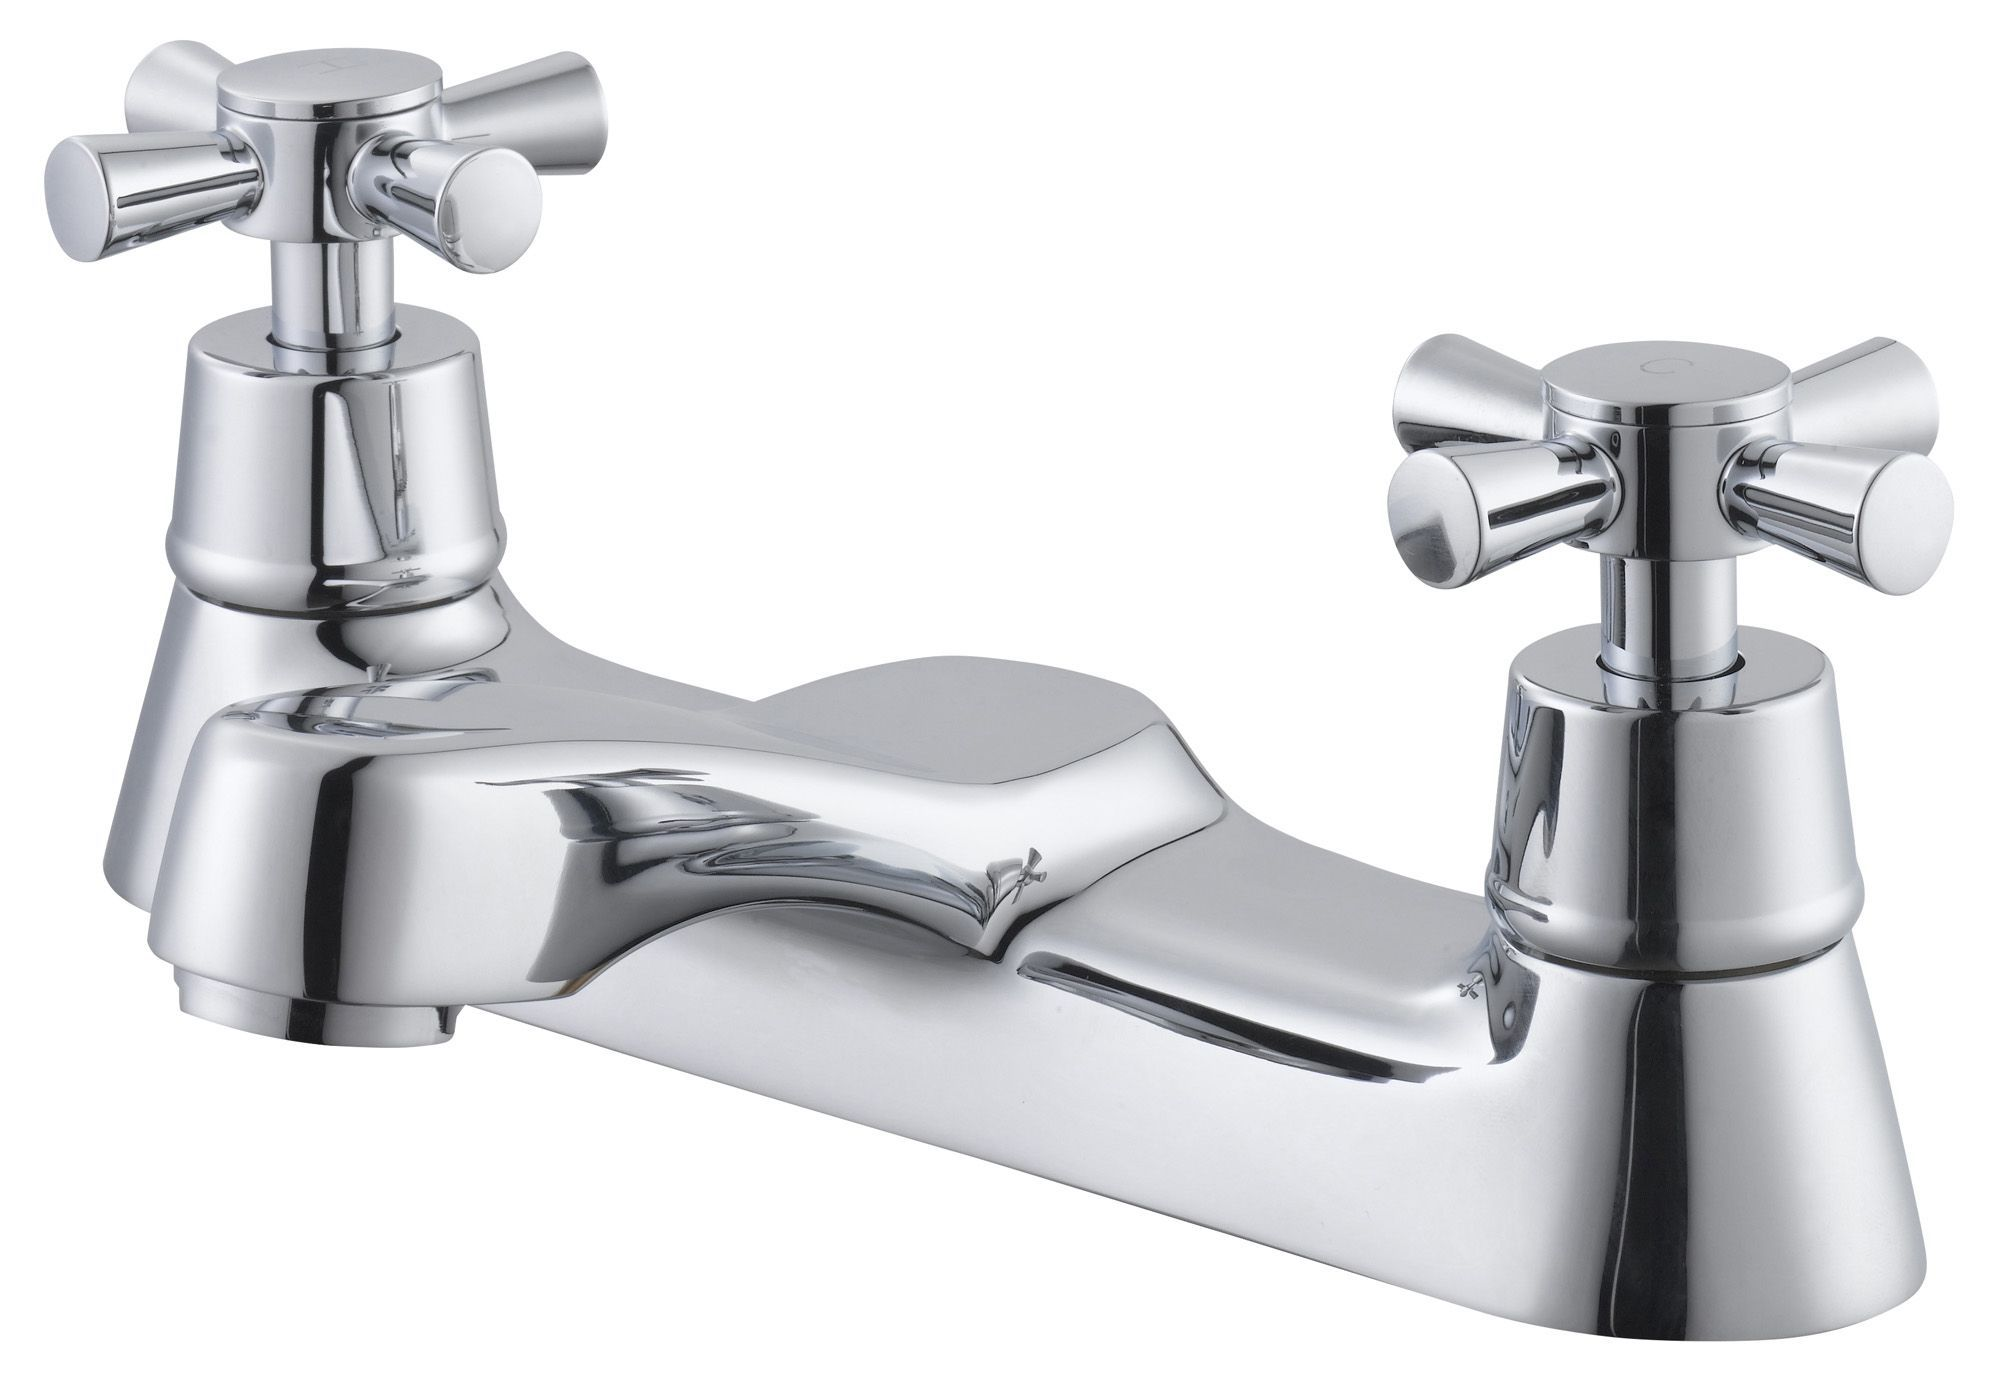 Plumbsure Crystal Chrome finish Bath mixer tap ...